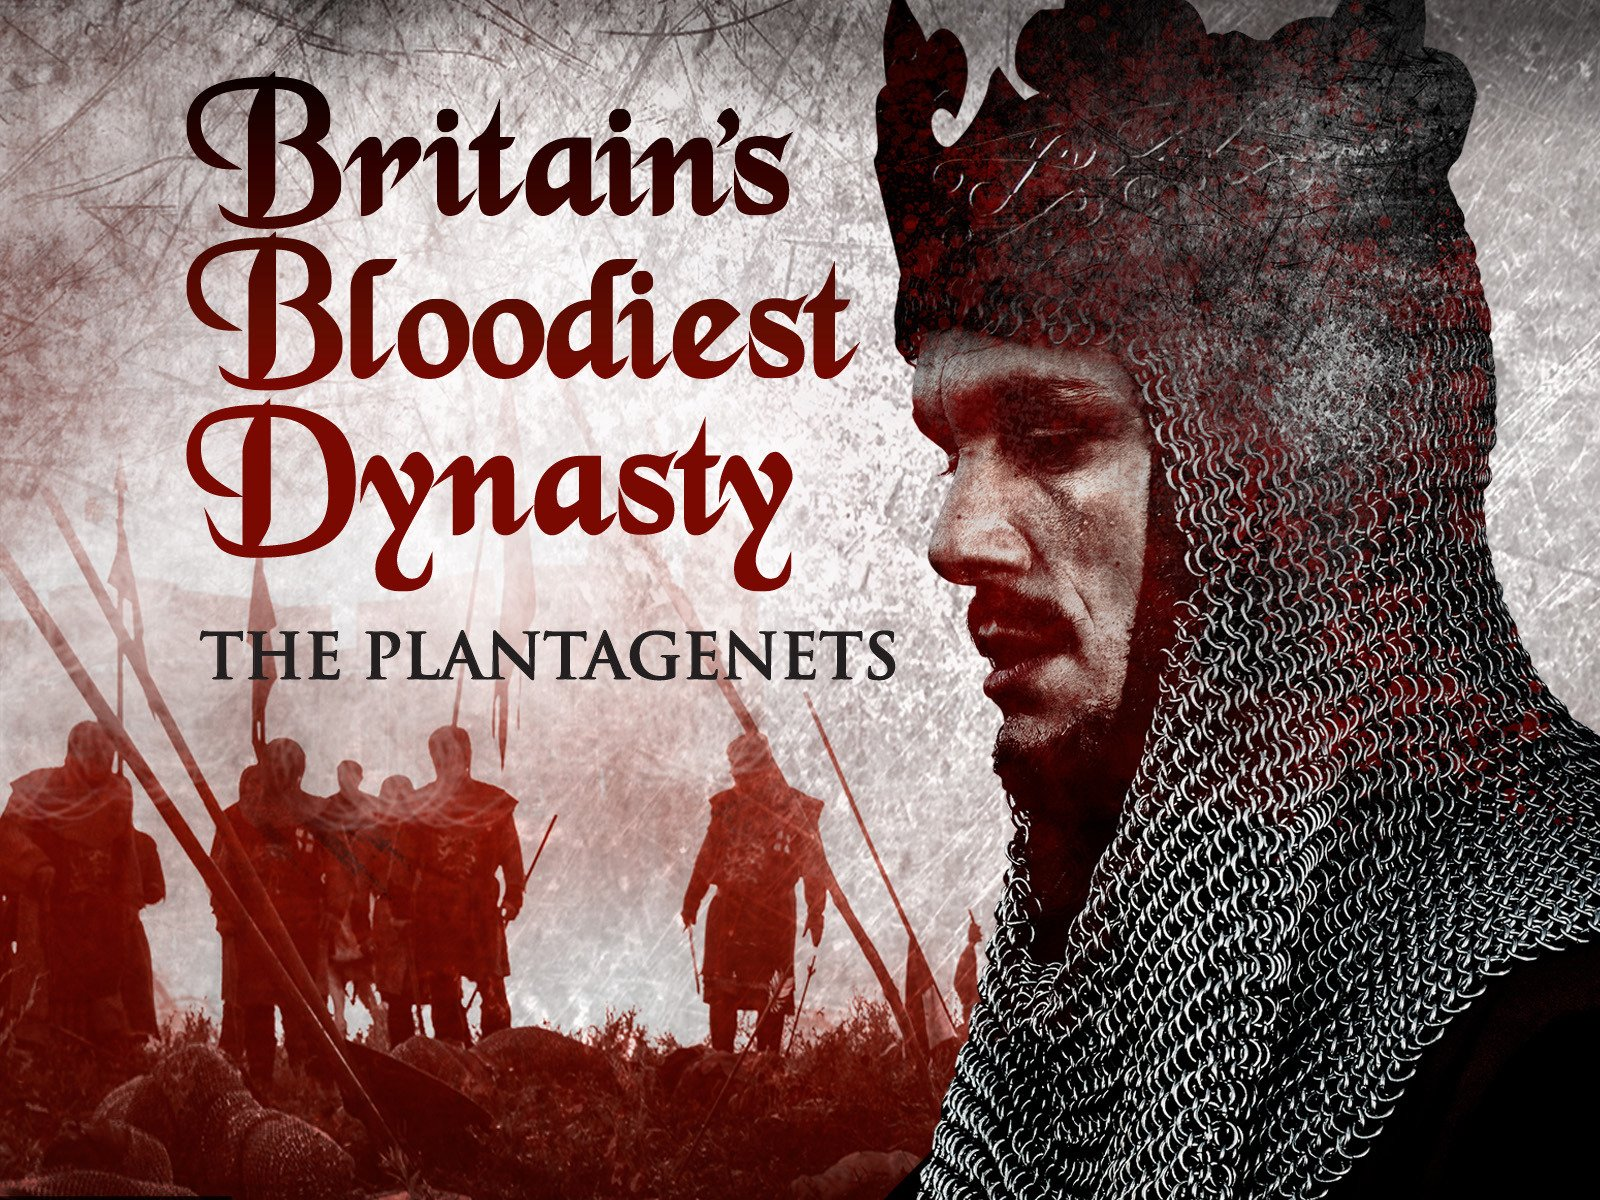 Britain's Bloodiest Dynasty: The Plantagenets Documentary